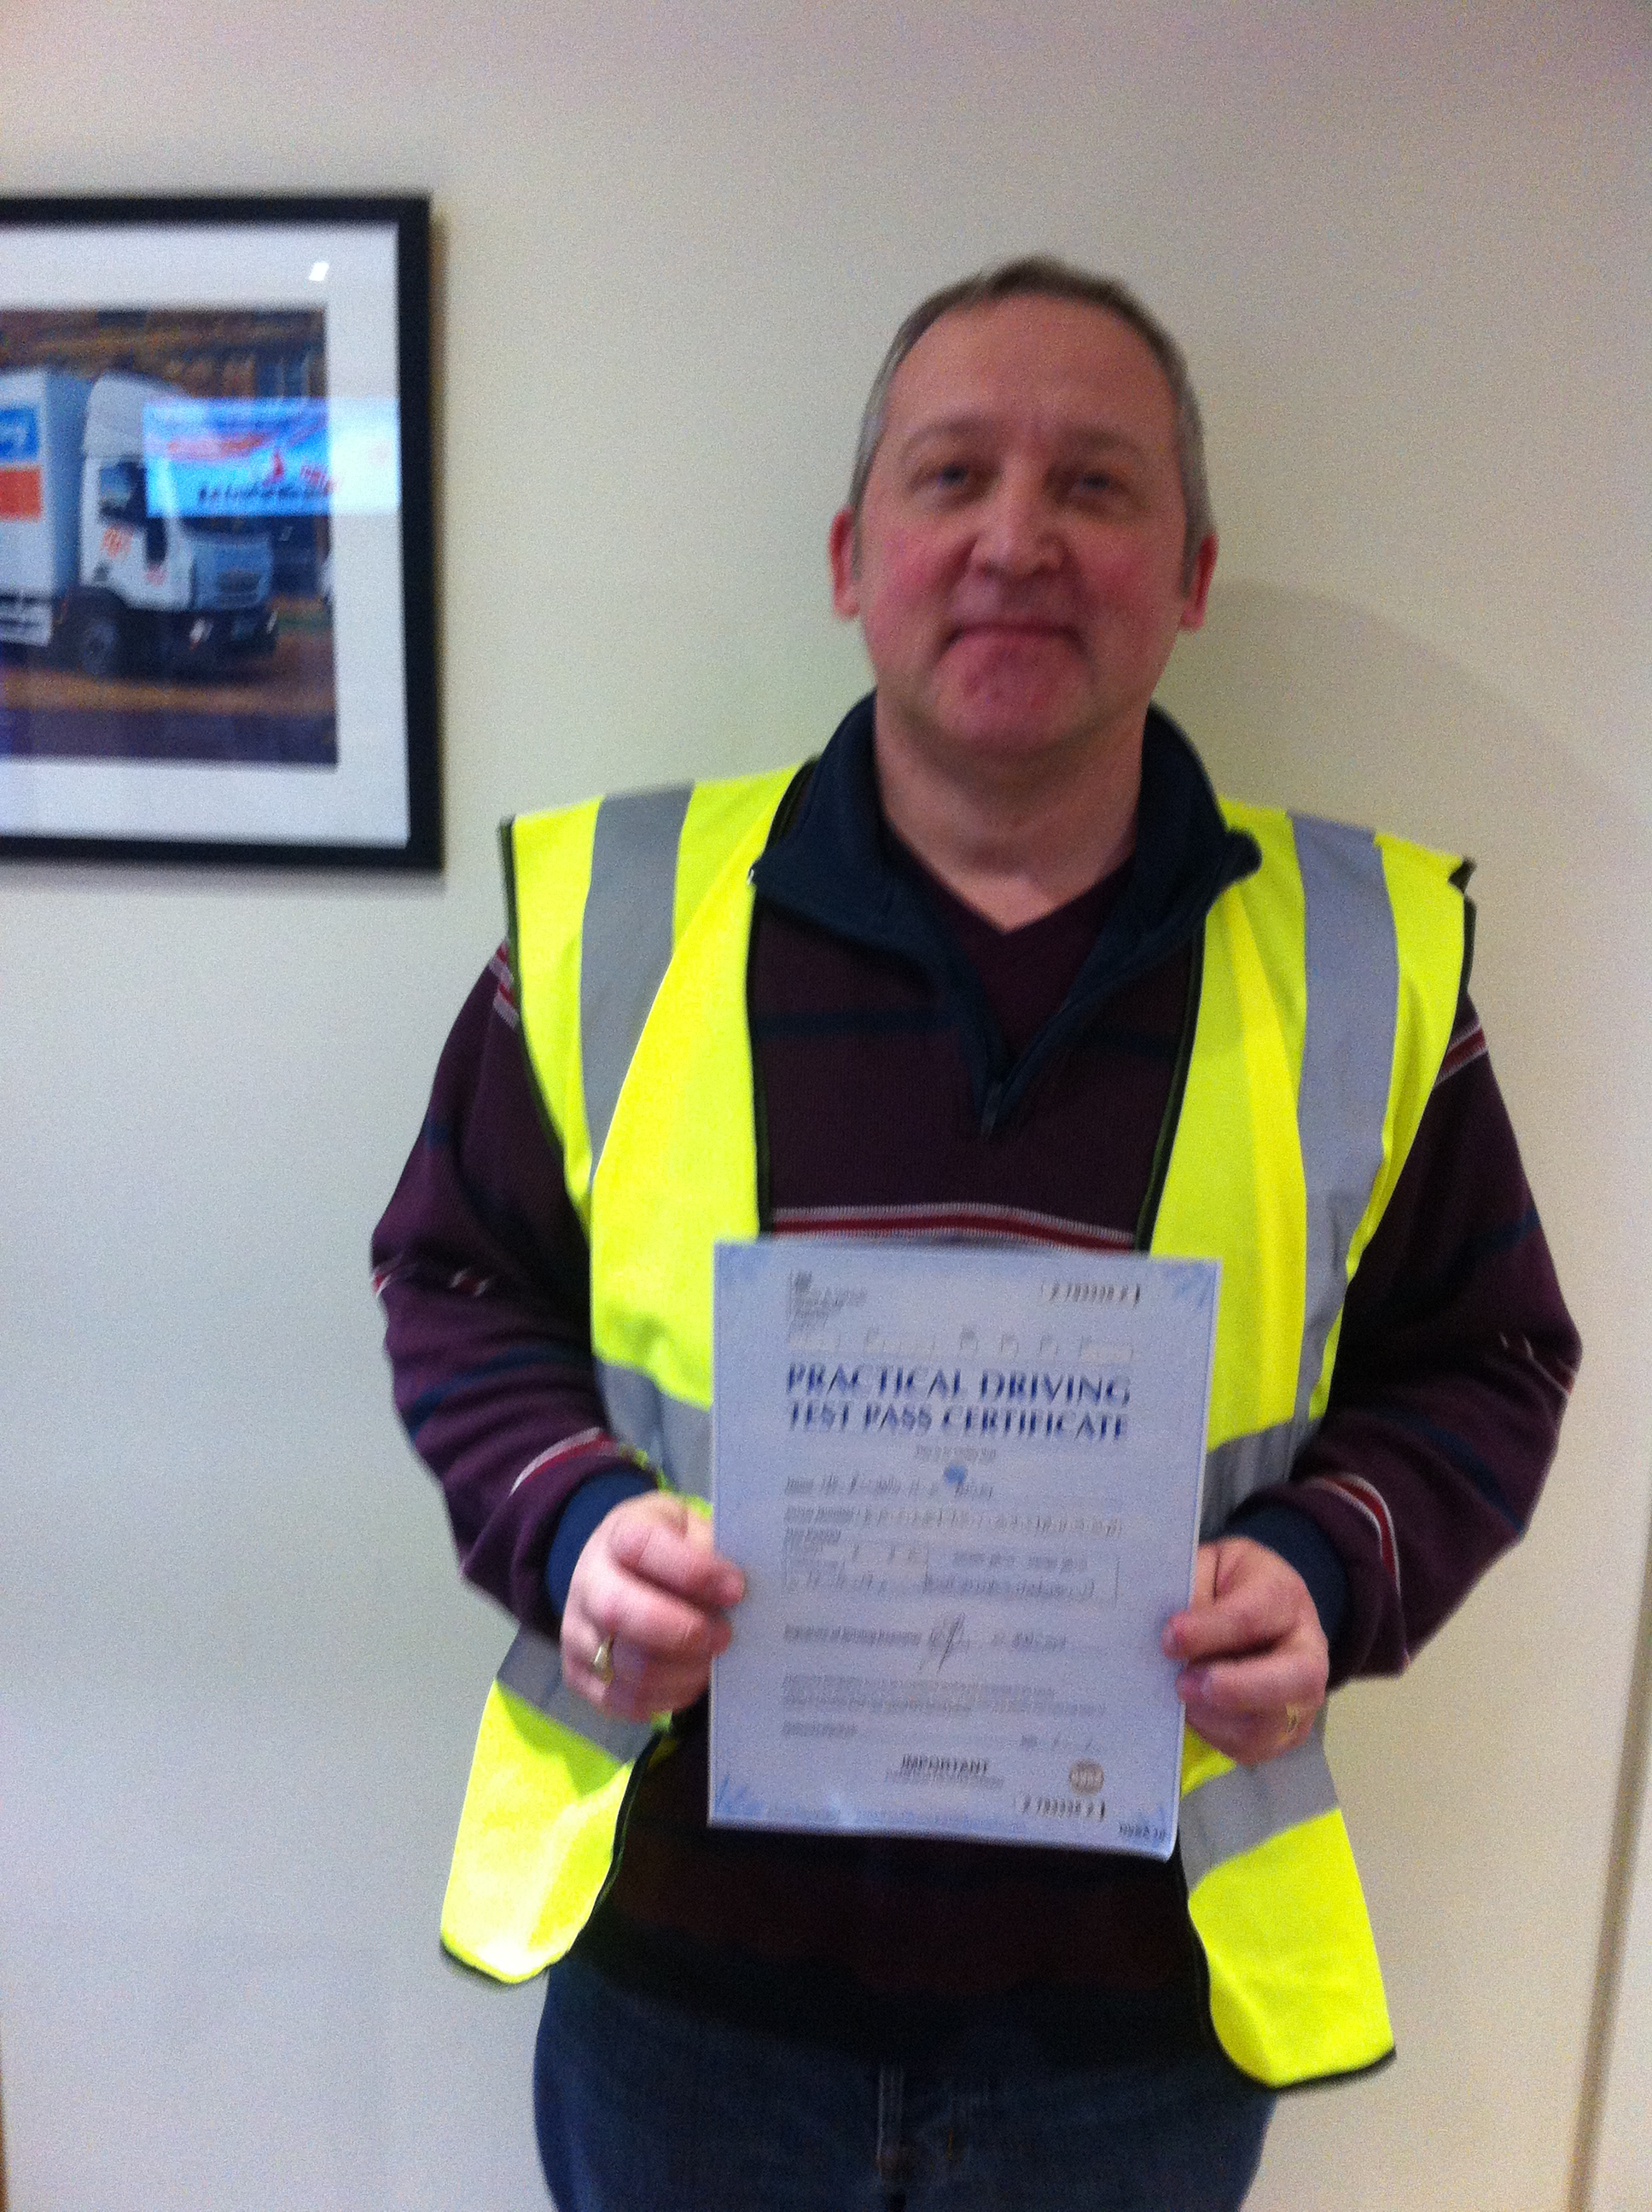 Richard Bailey from Mansfield PASSED CAT C #ipassedwithpstt